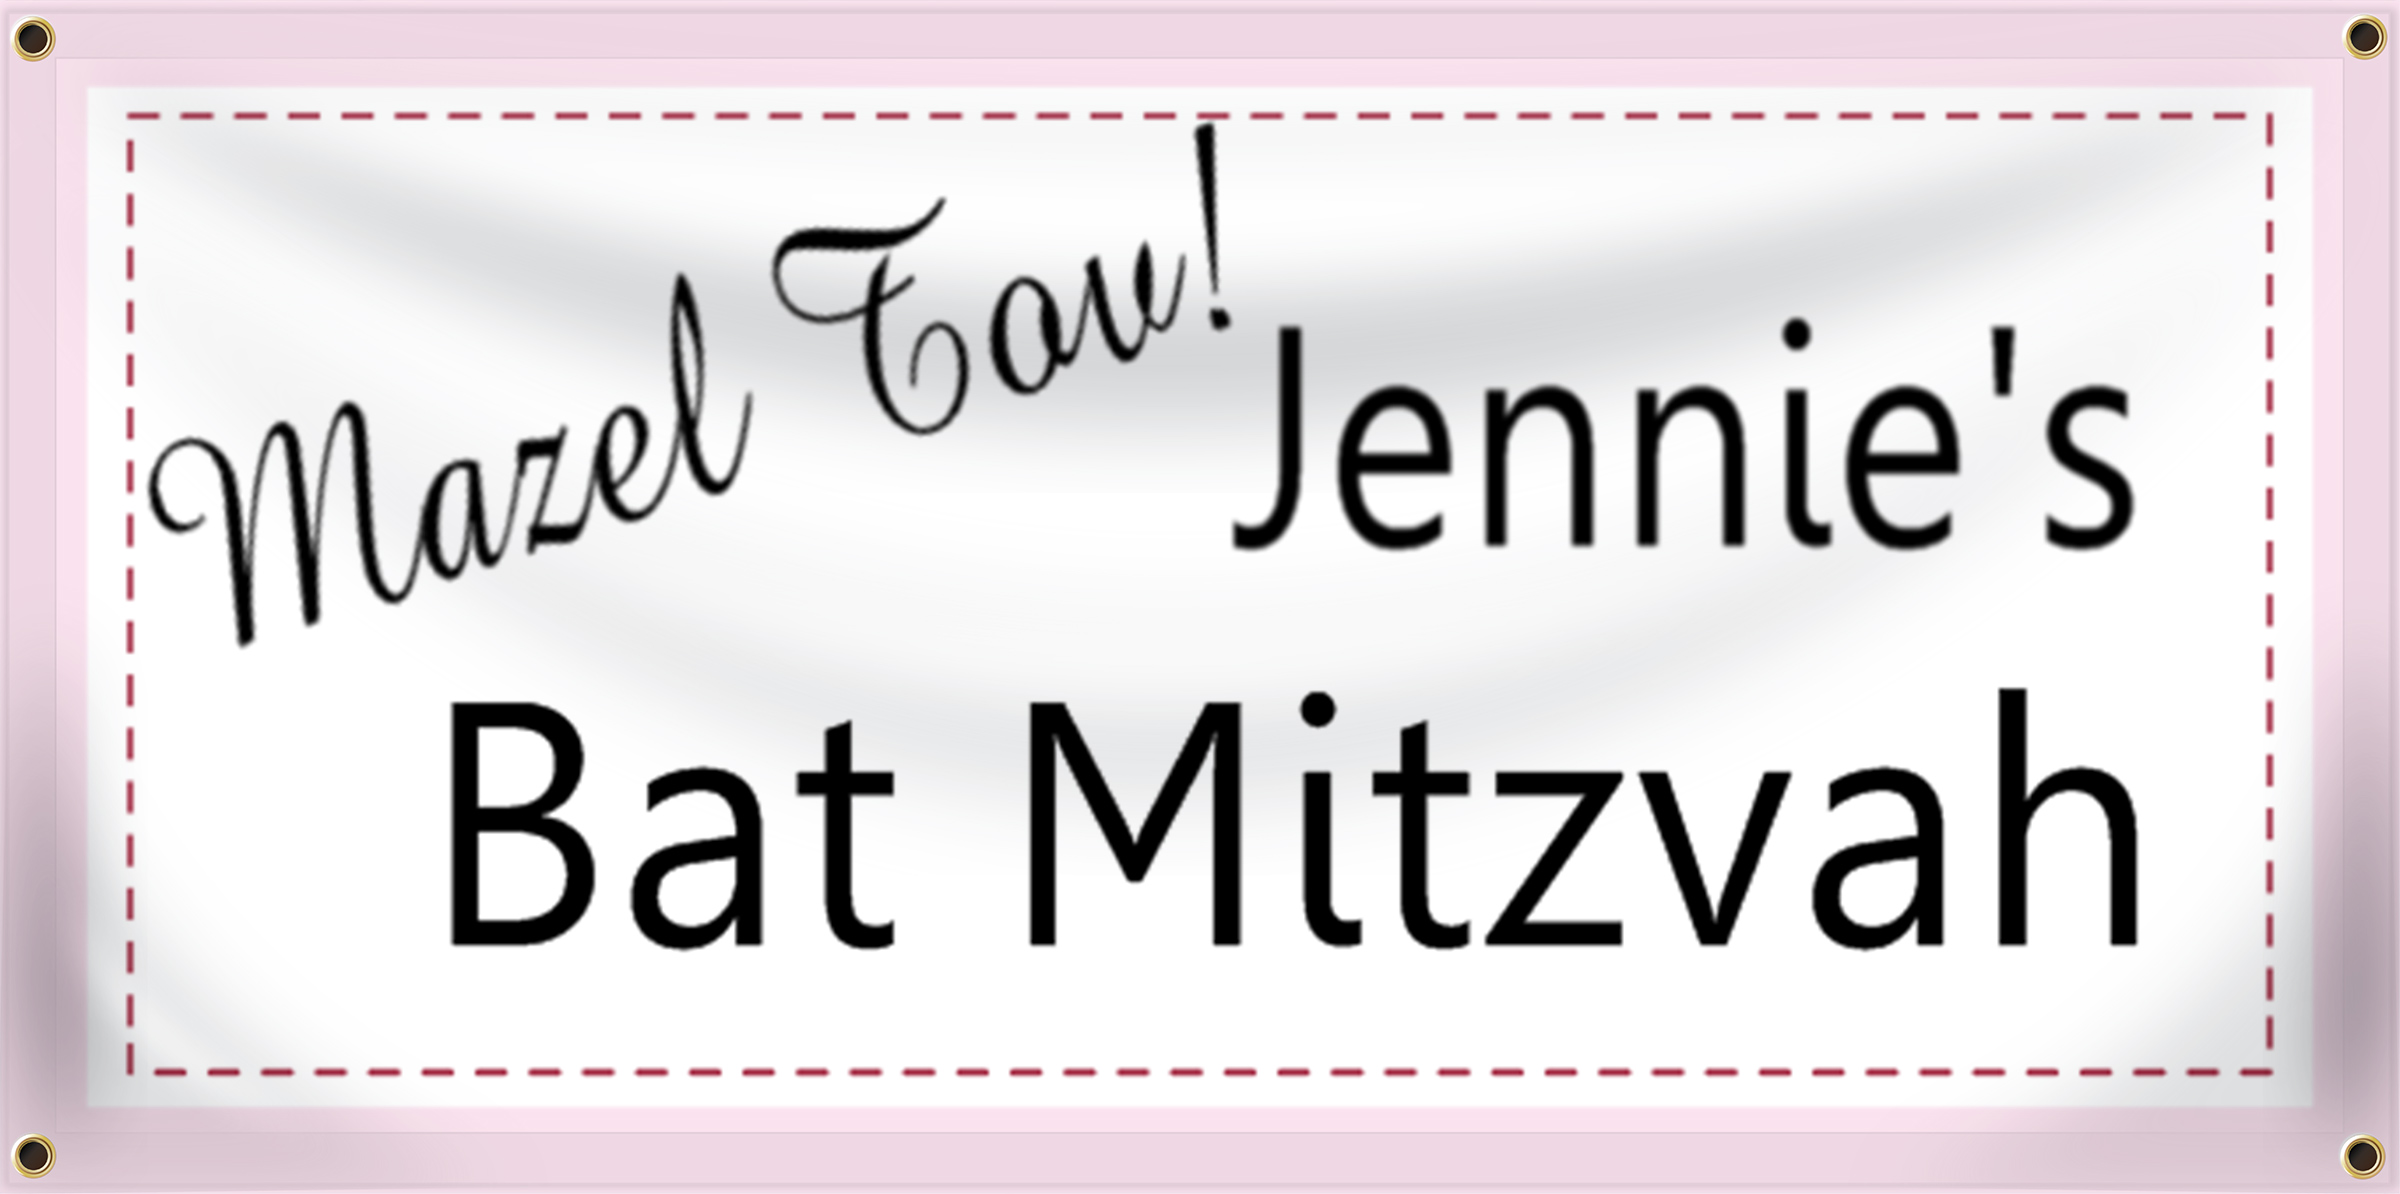 Bar & Bat Mitzvah Banner Idea | LawnSigns.com